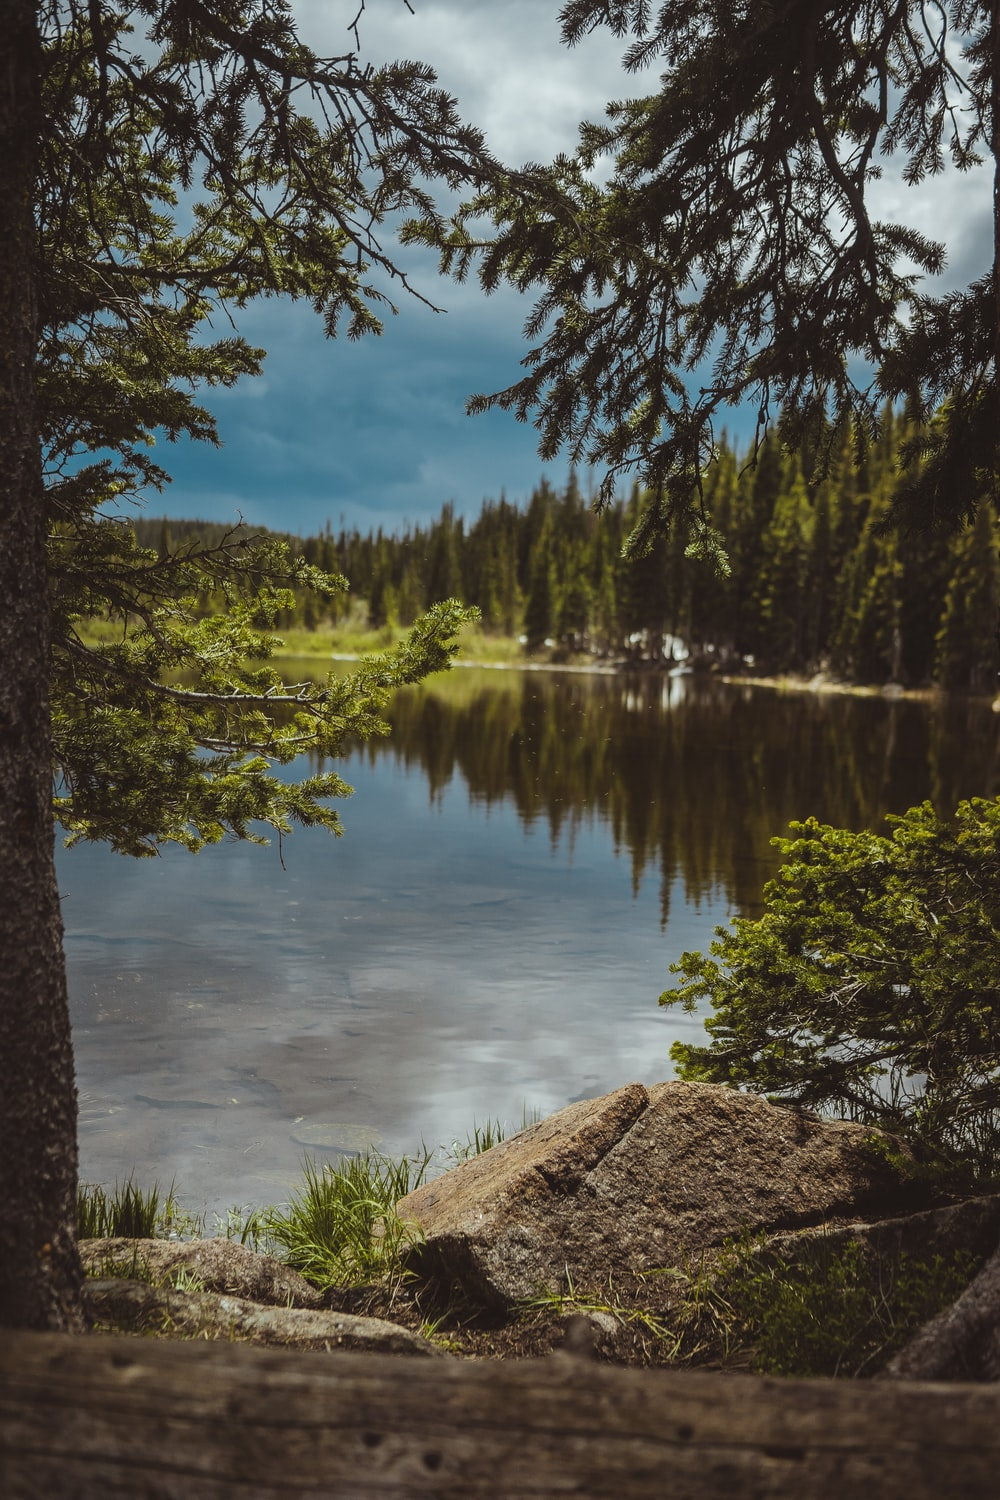 landscape photo of green-leafed pine trees beside body of water